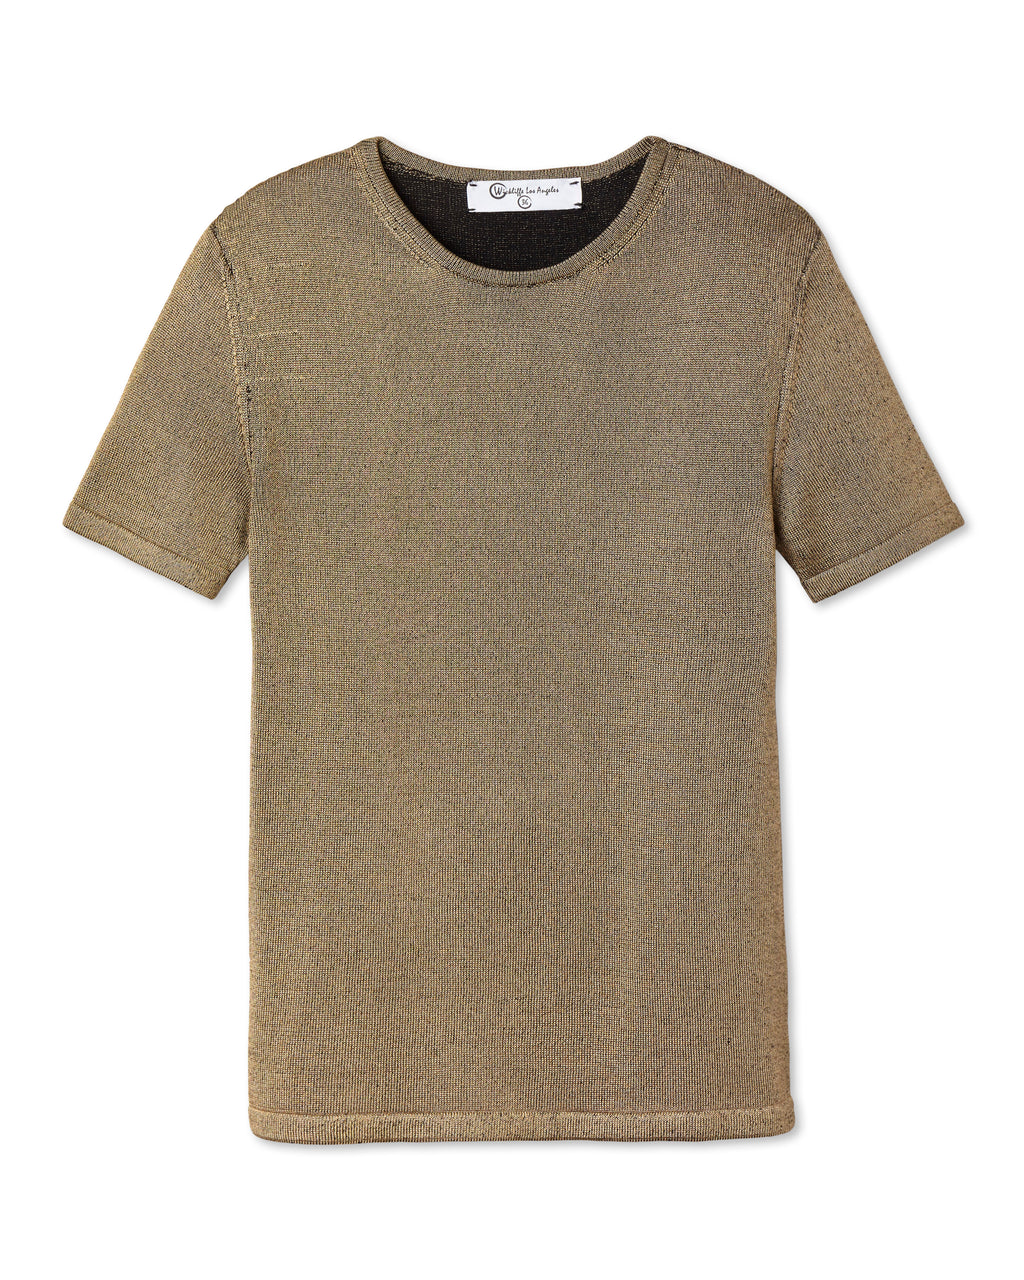 ELIO PLAITED KNIT CREW NECK GOLD BLACK